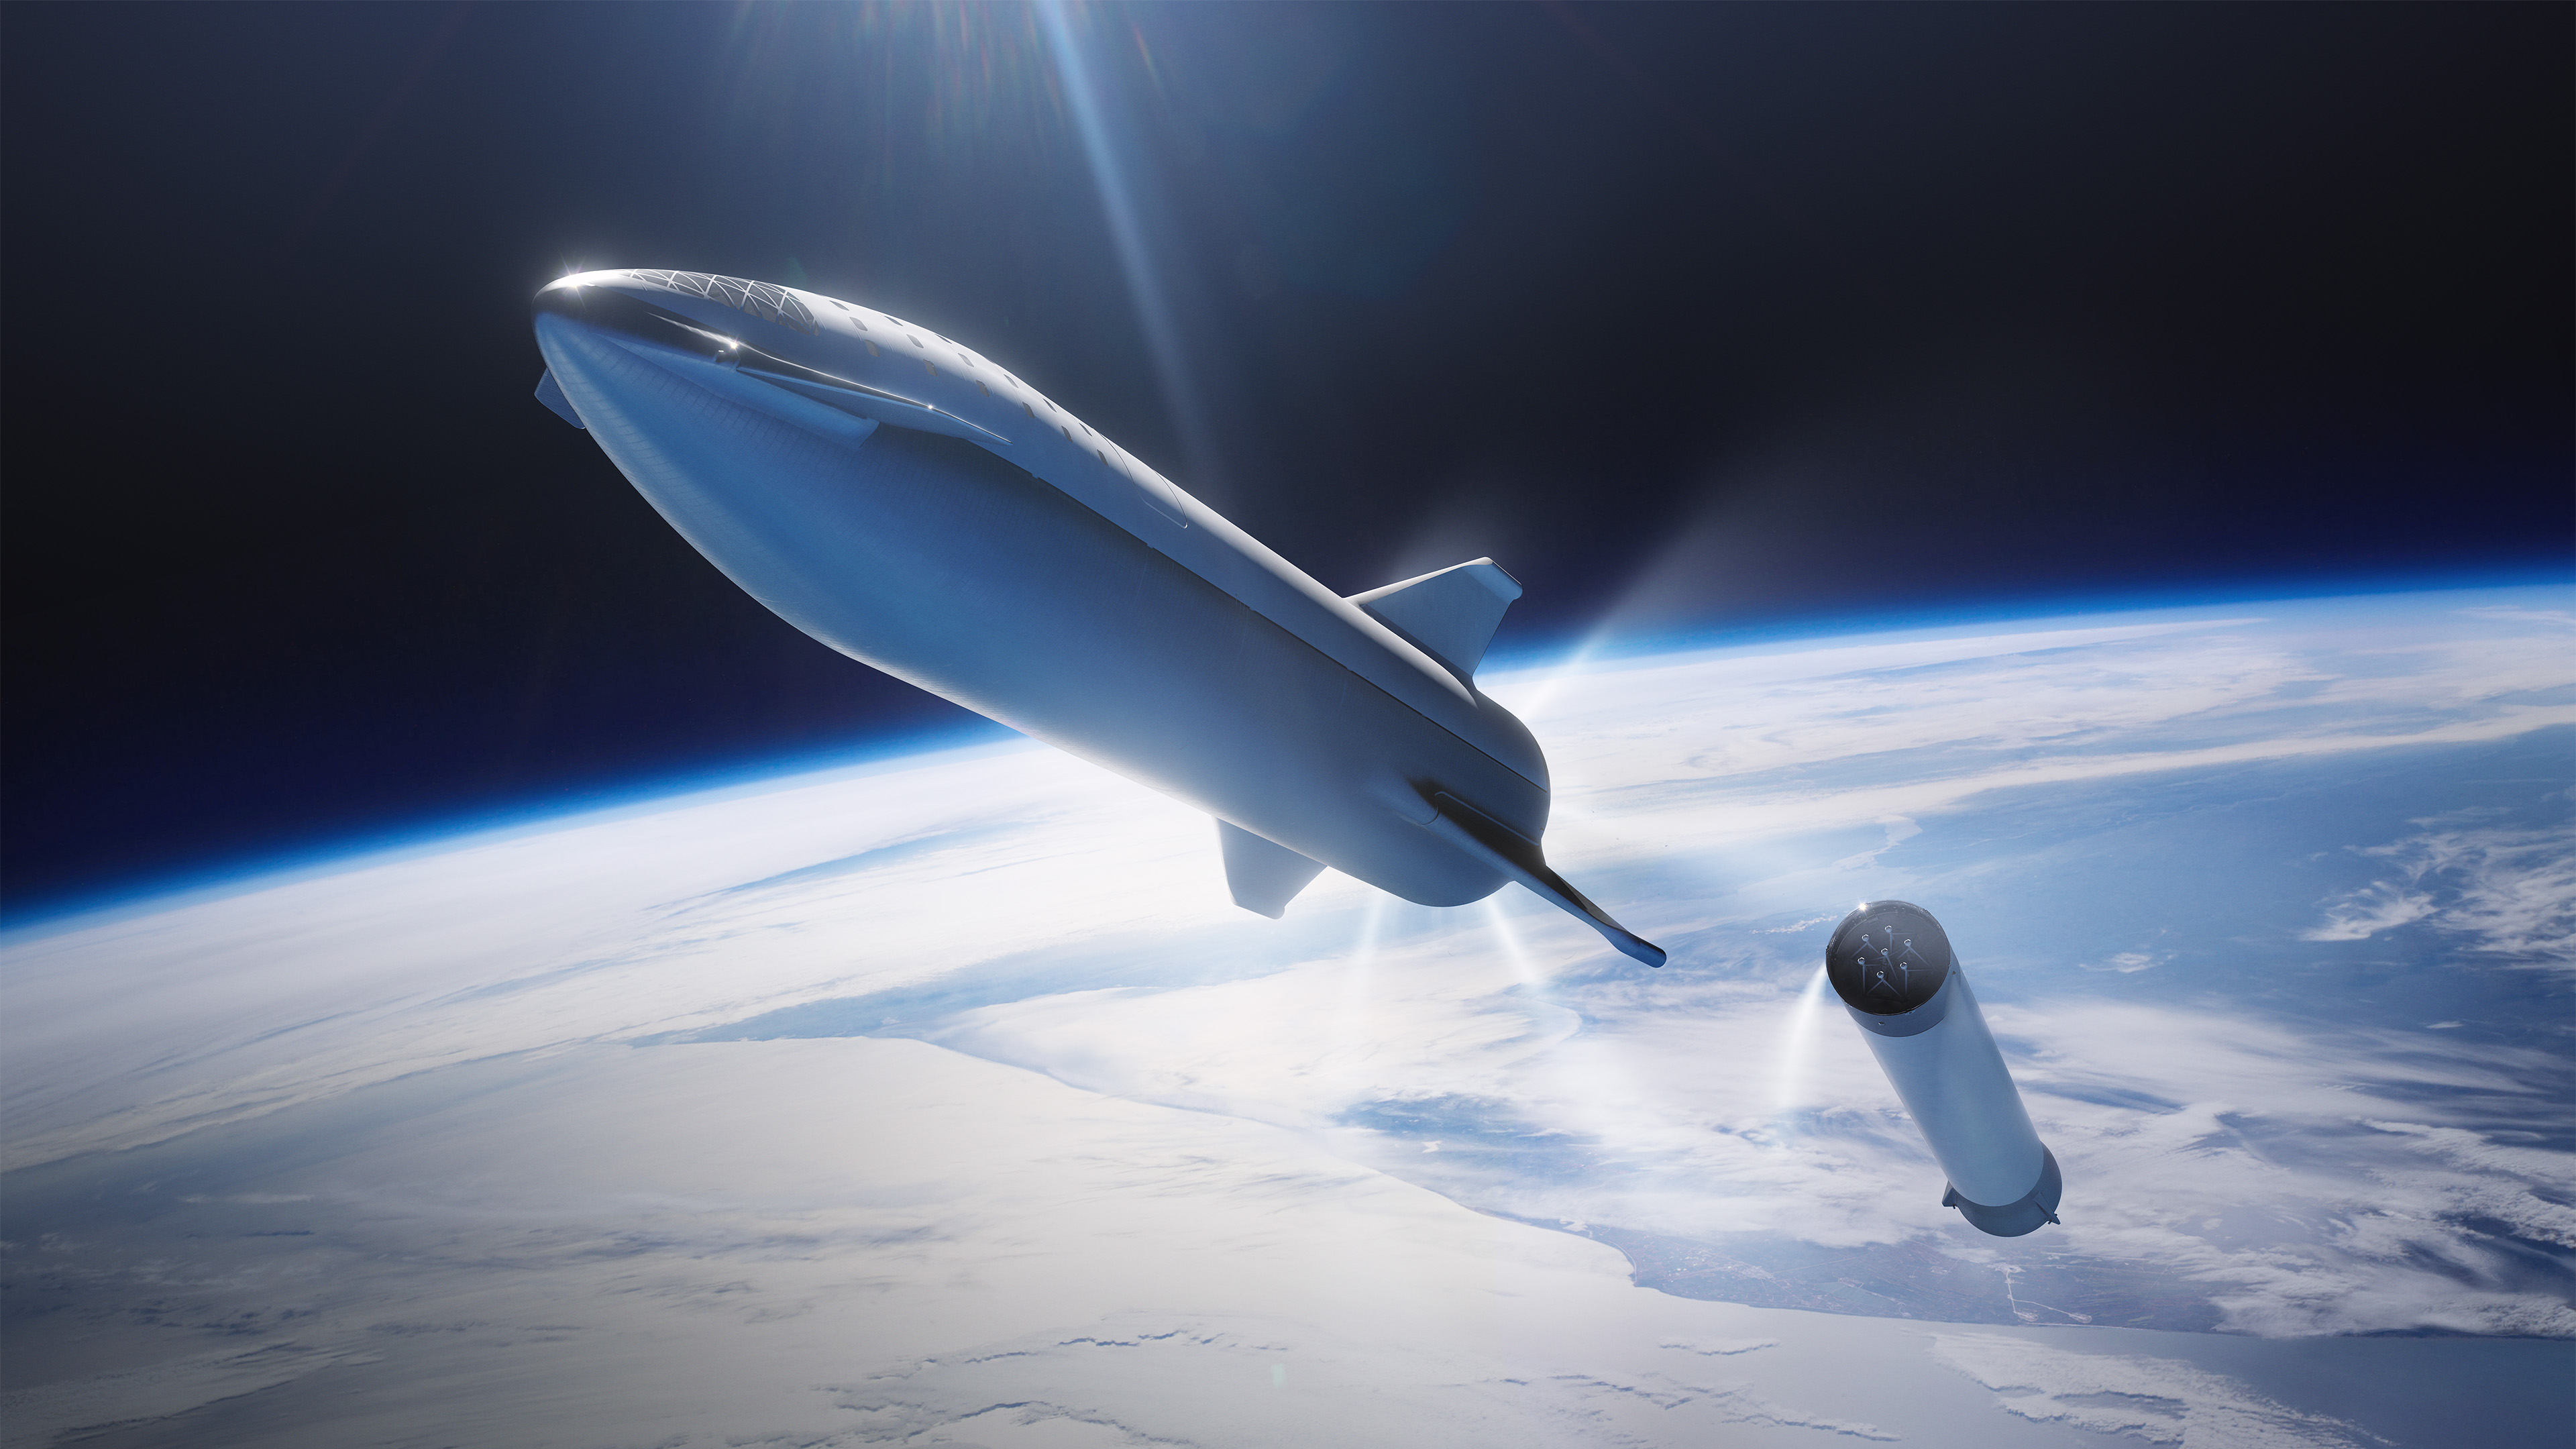 Photo of a rocketship dropping it's booster in low earth orbit